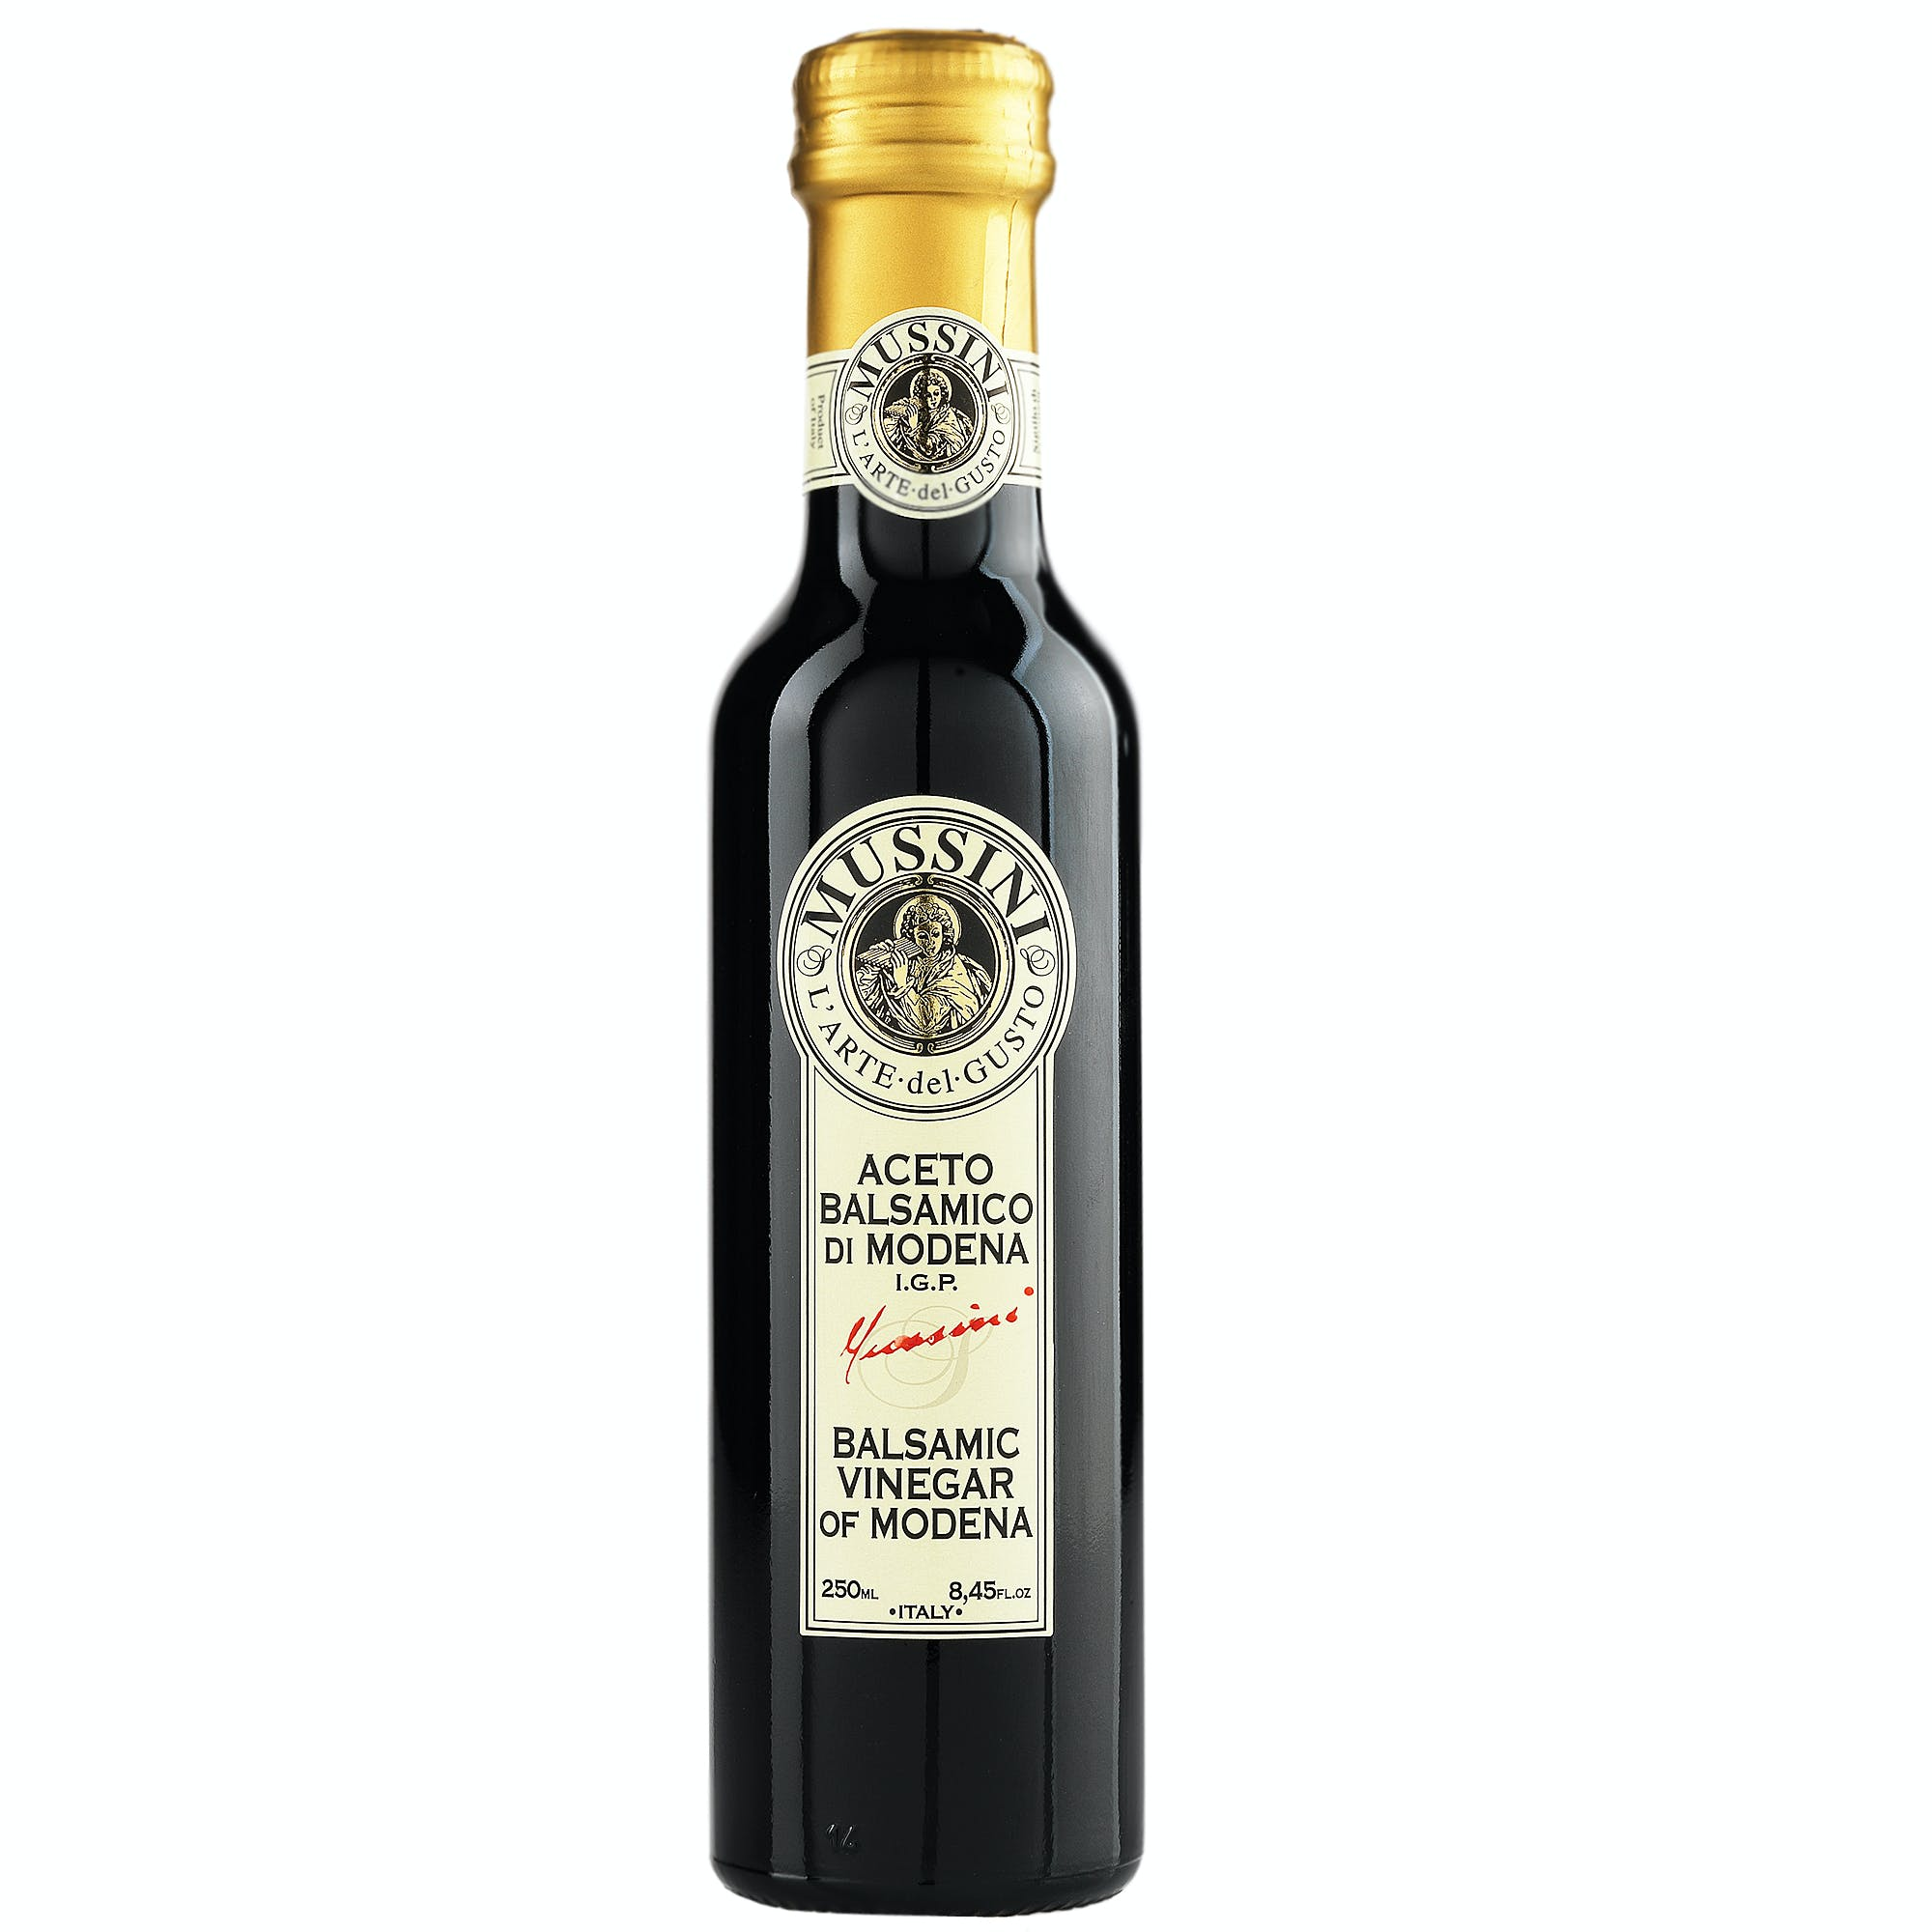 Classic 2 Year Balsamic Vinegar - sold by M5 Corporation